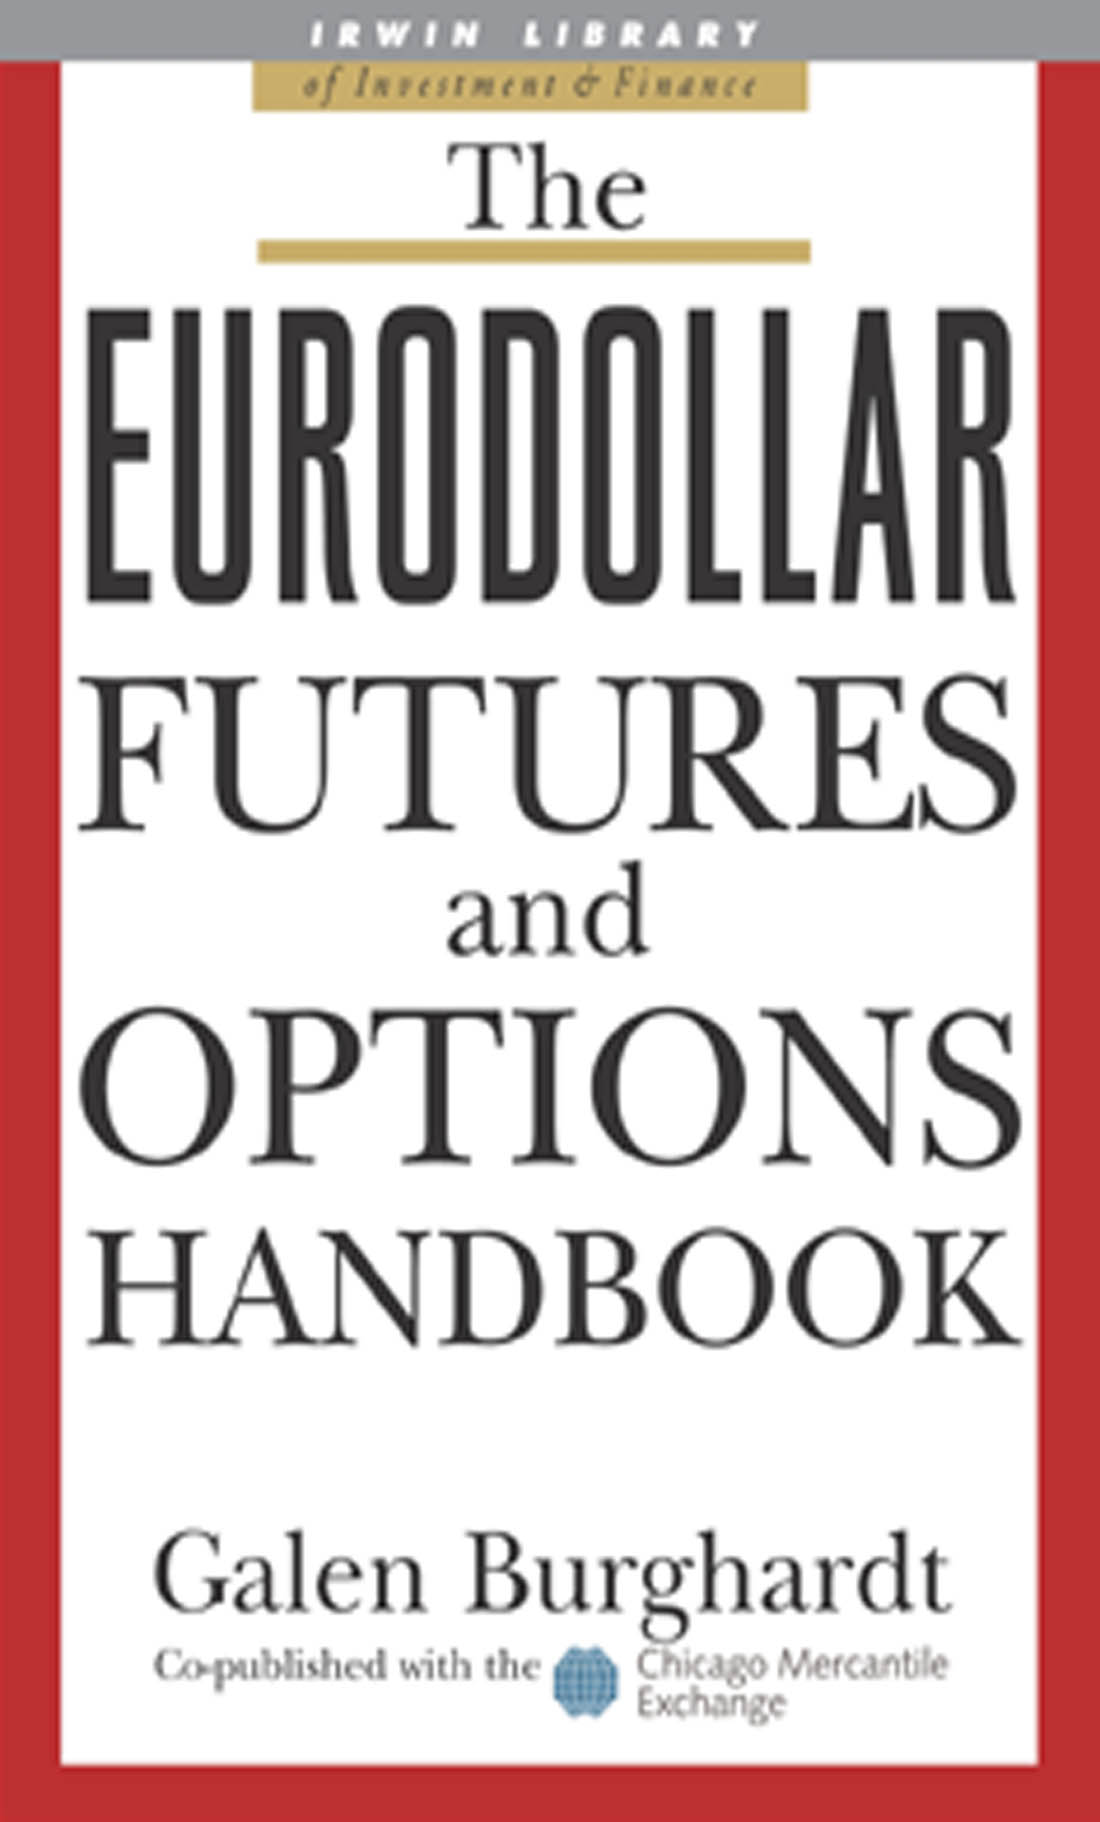 Download Ebook The Eurodollar Futures and Options Handbook by Galen Burghardt Pdf